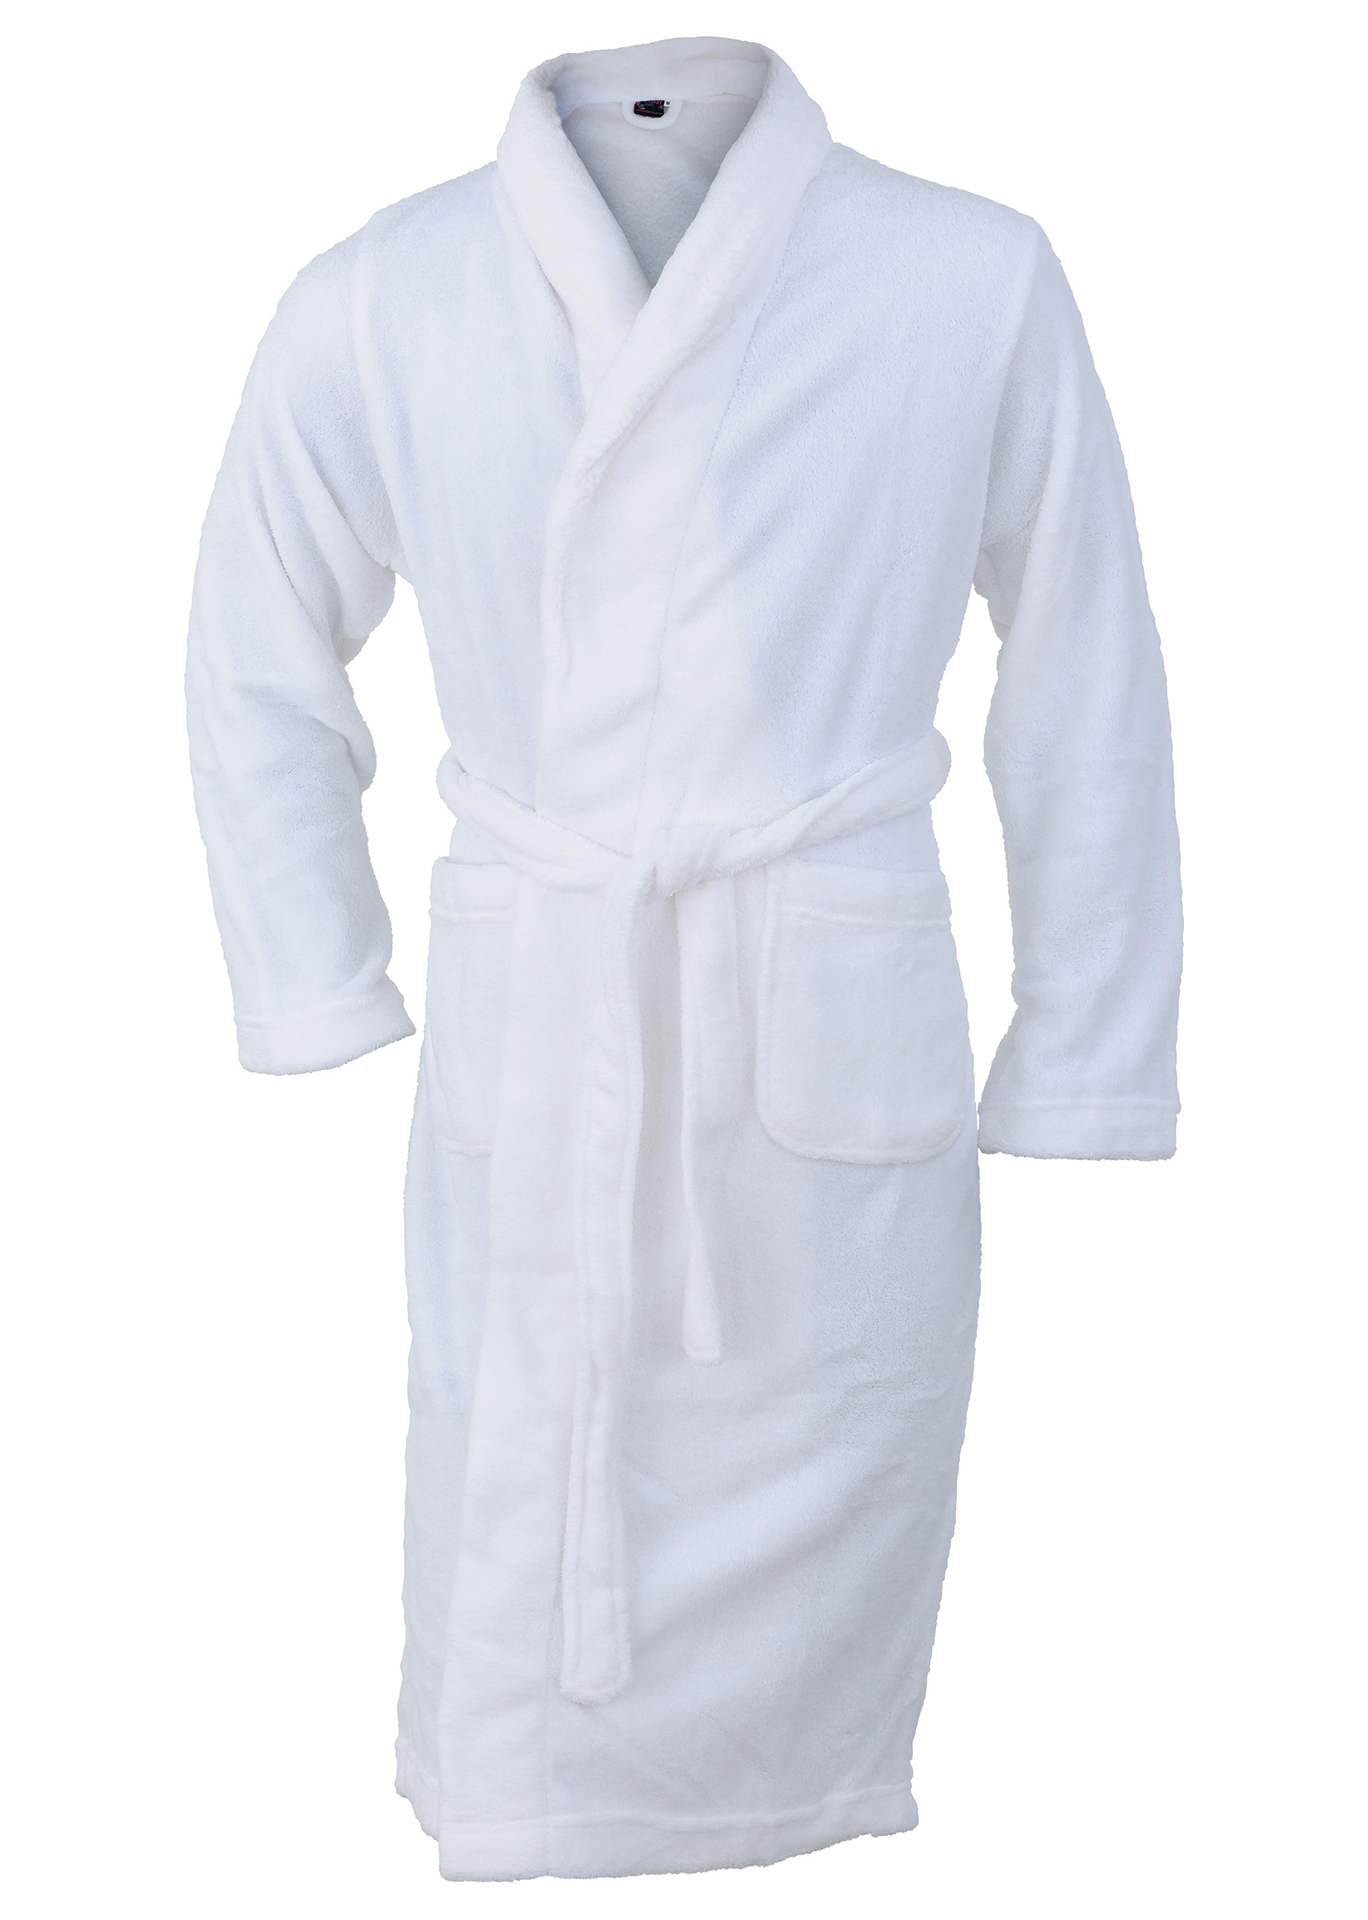 Bath Robes New Generation white